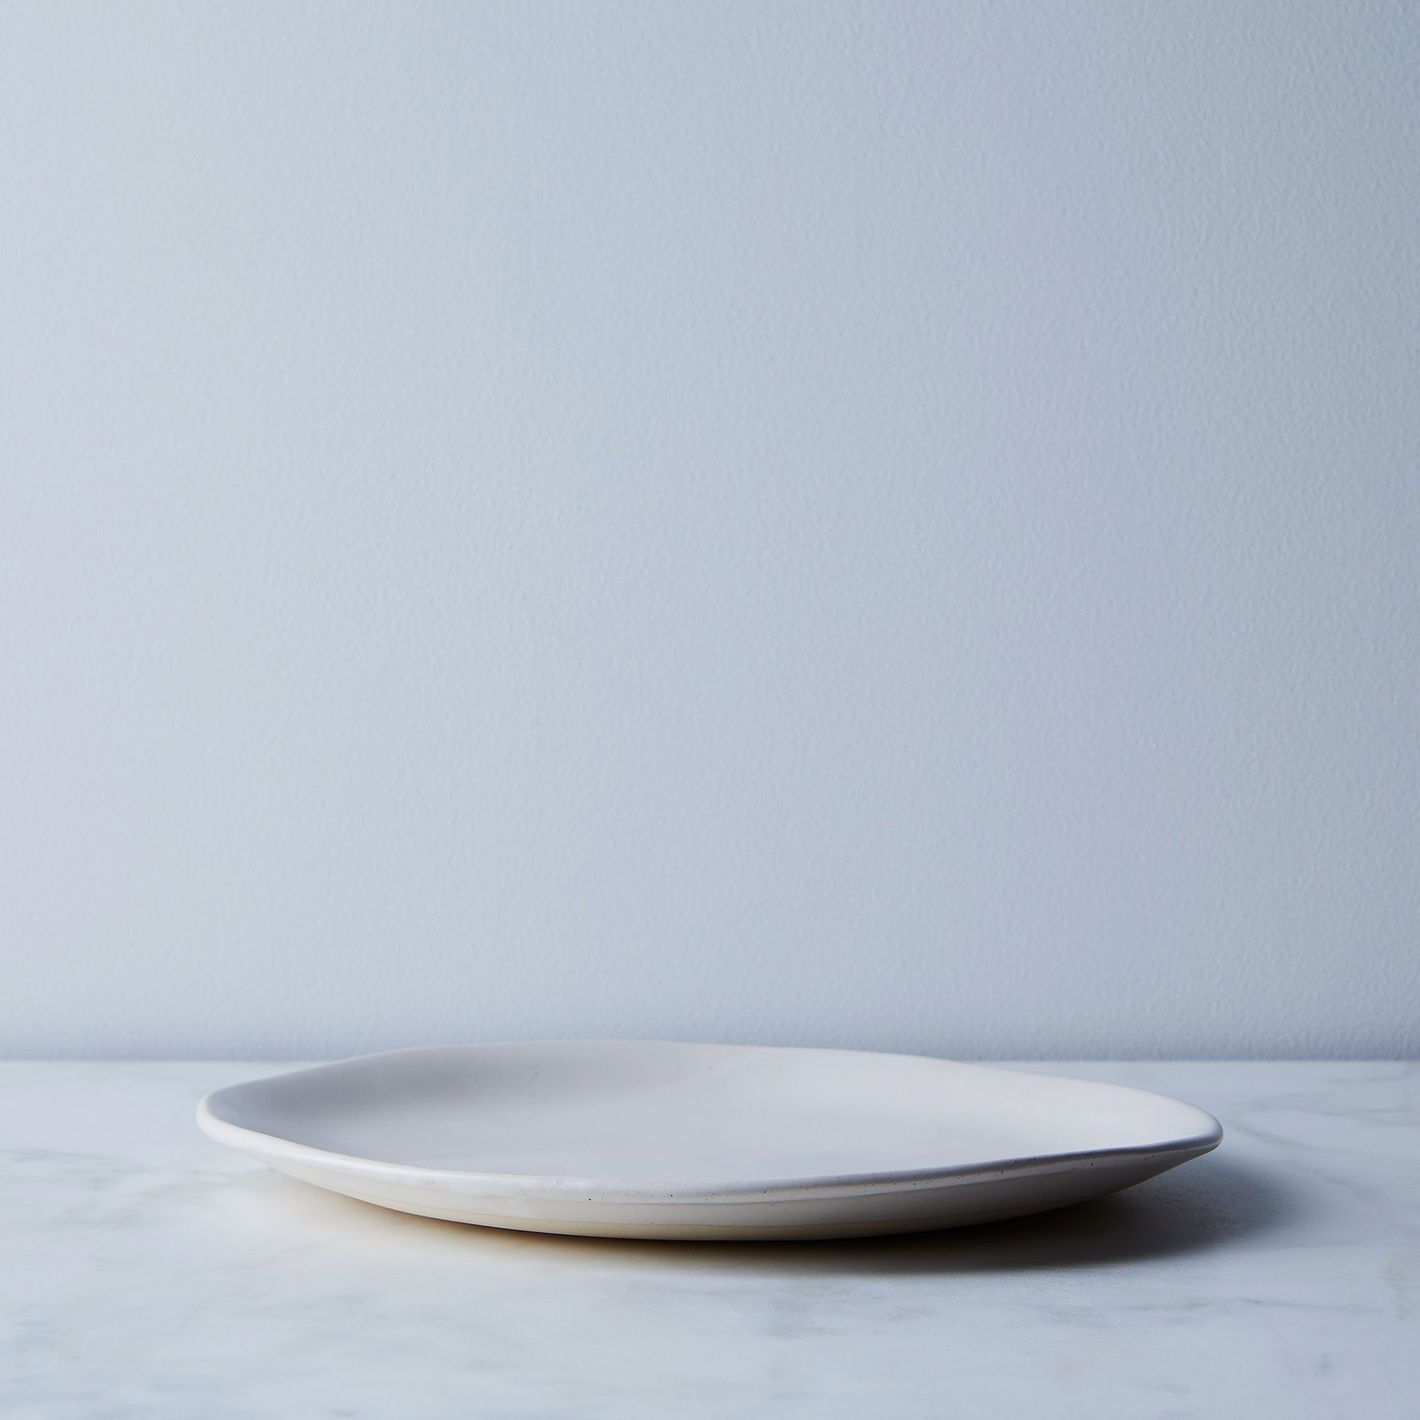 Handmade Wabi Sabi Ceramic Dinnerware \u2014 Dinner Plate Milk & 21 Best Basic-But-Cool Ceramic Plates and Tableware \u2014 2018